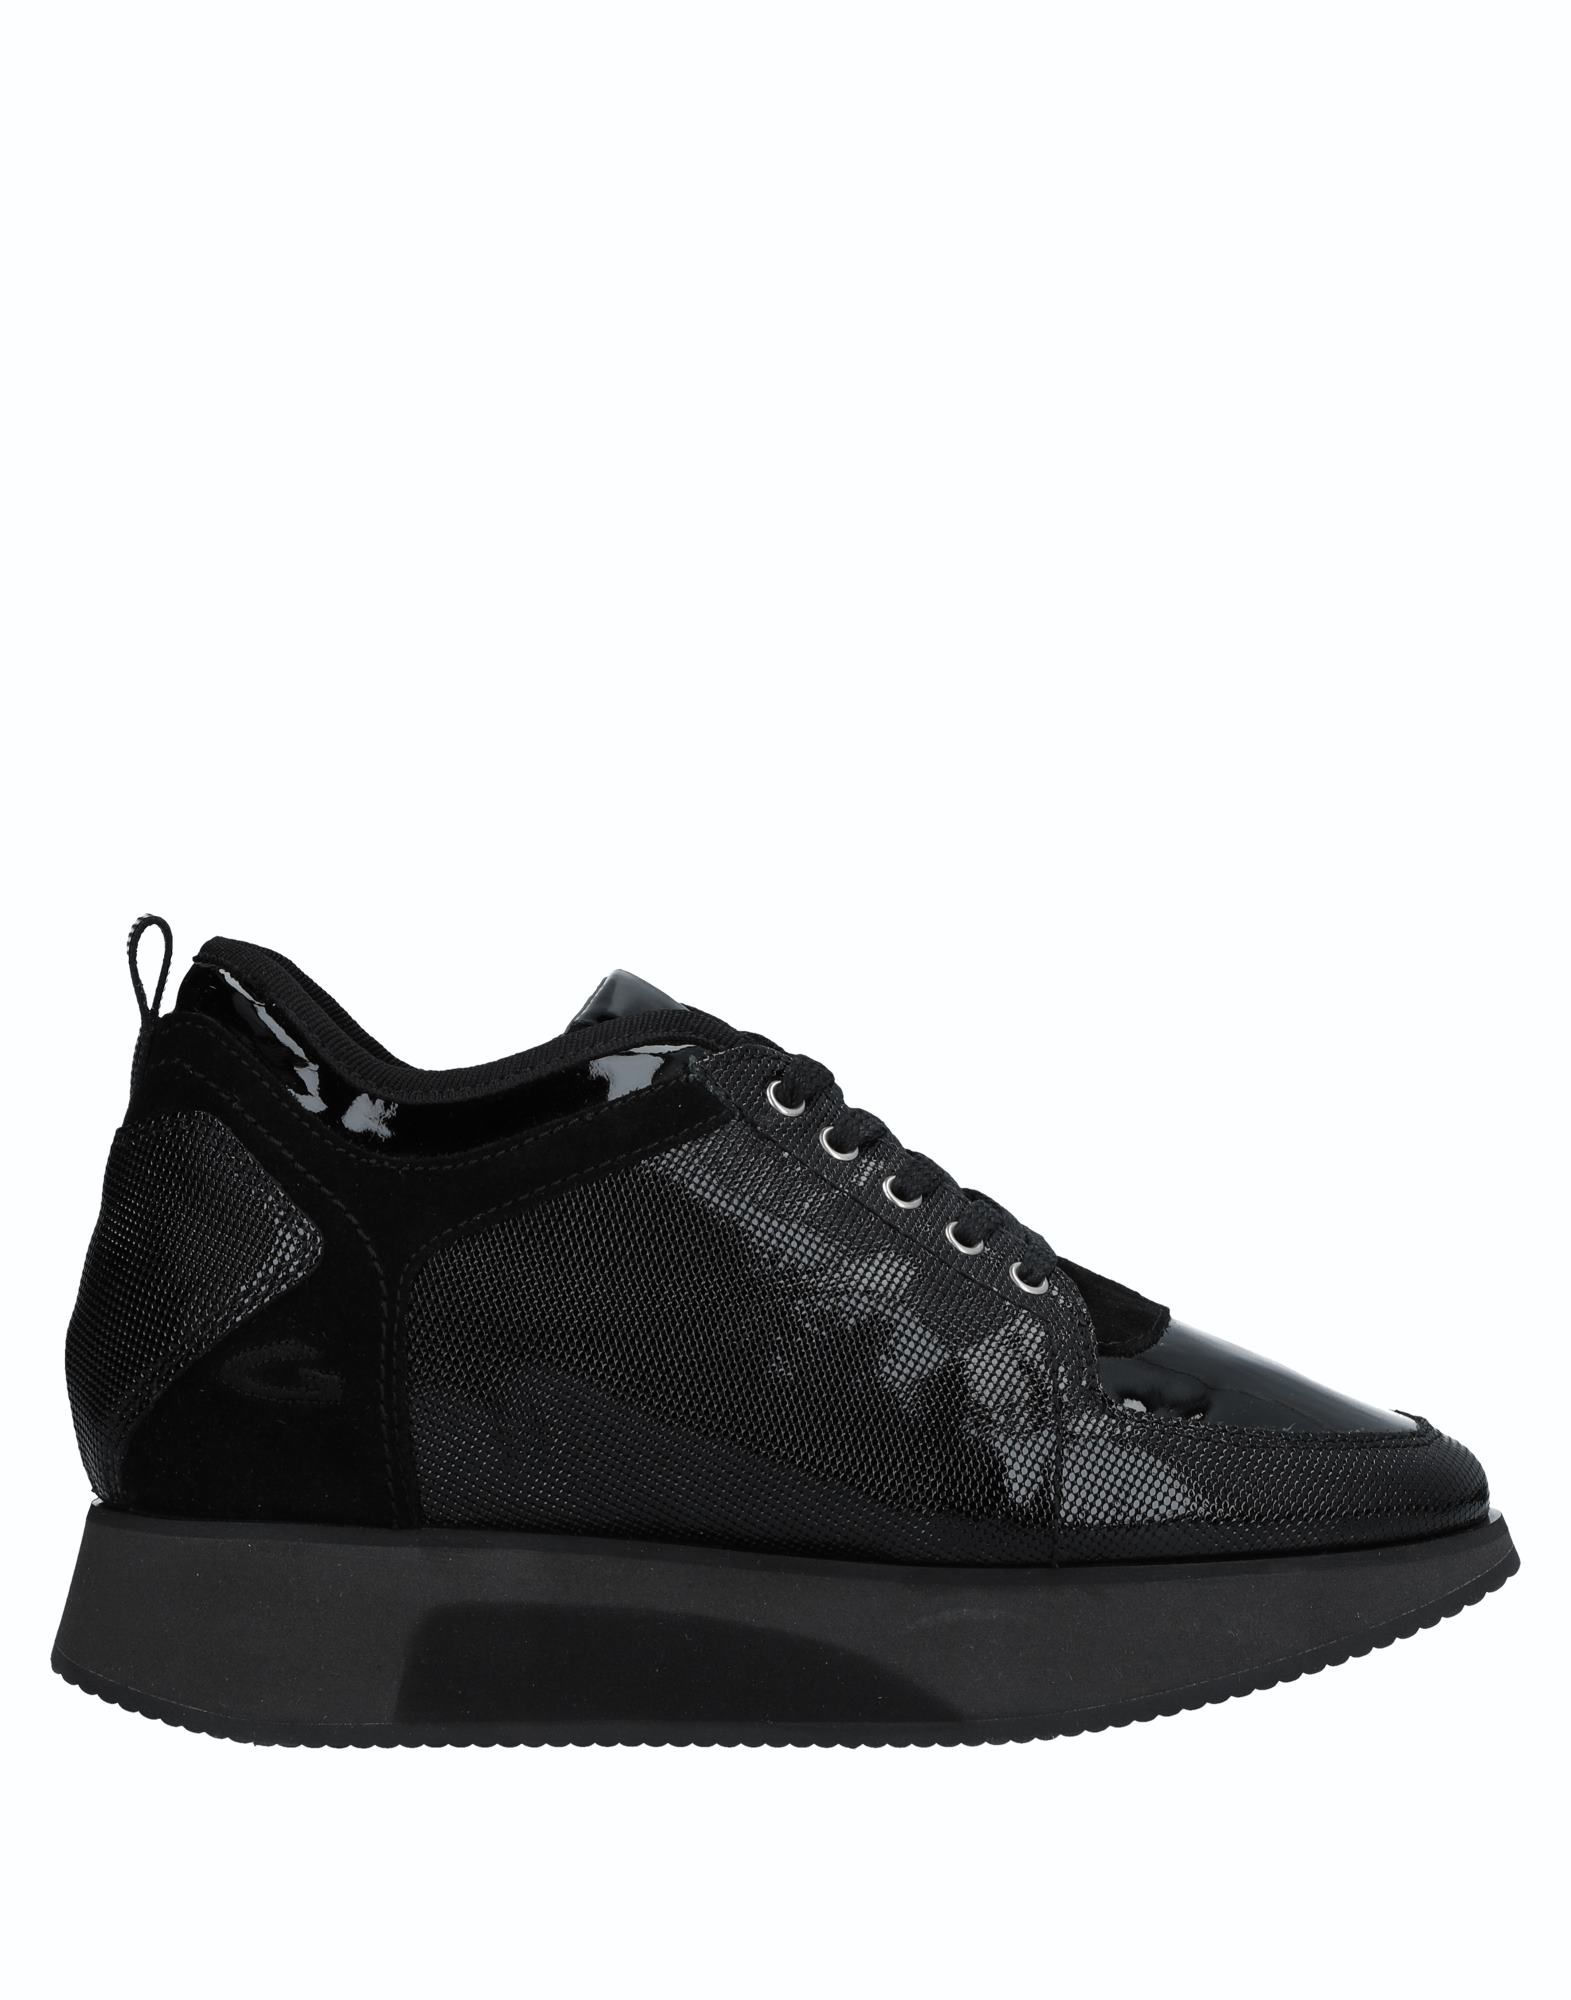 ALBERTO GUARDIANI Sneakers in Black